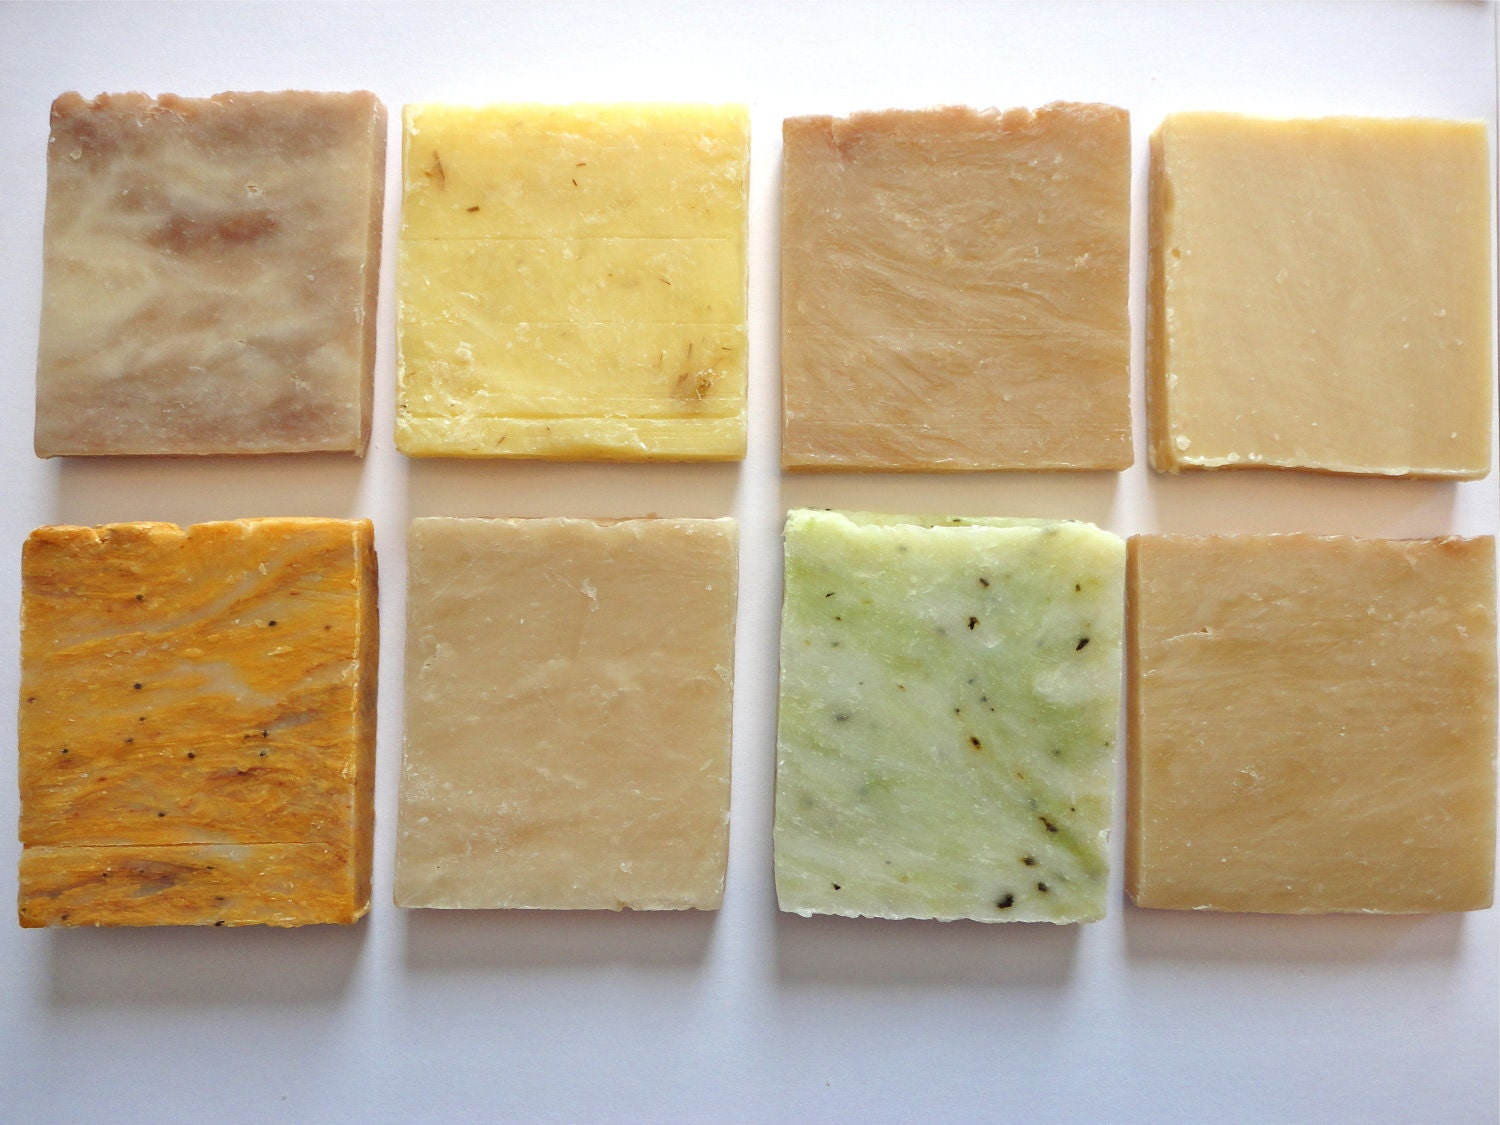 15 handmade mini soap favors in various colors and scents